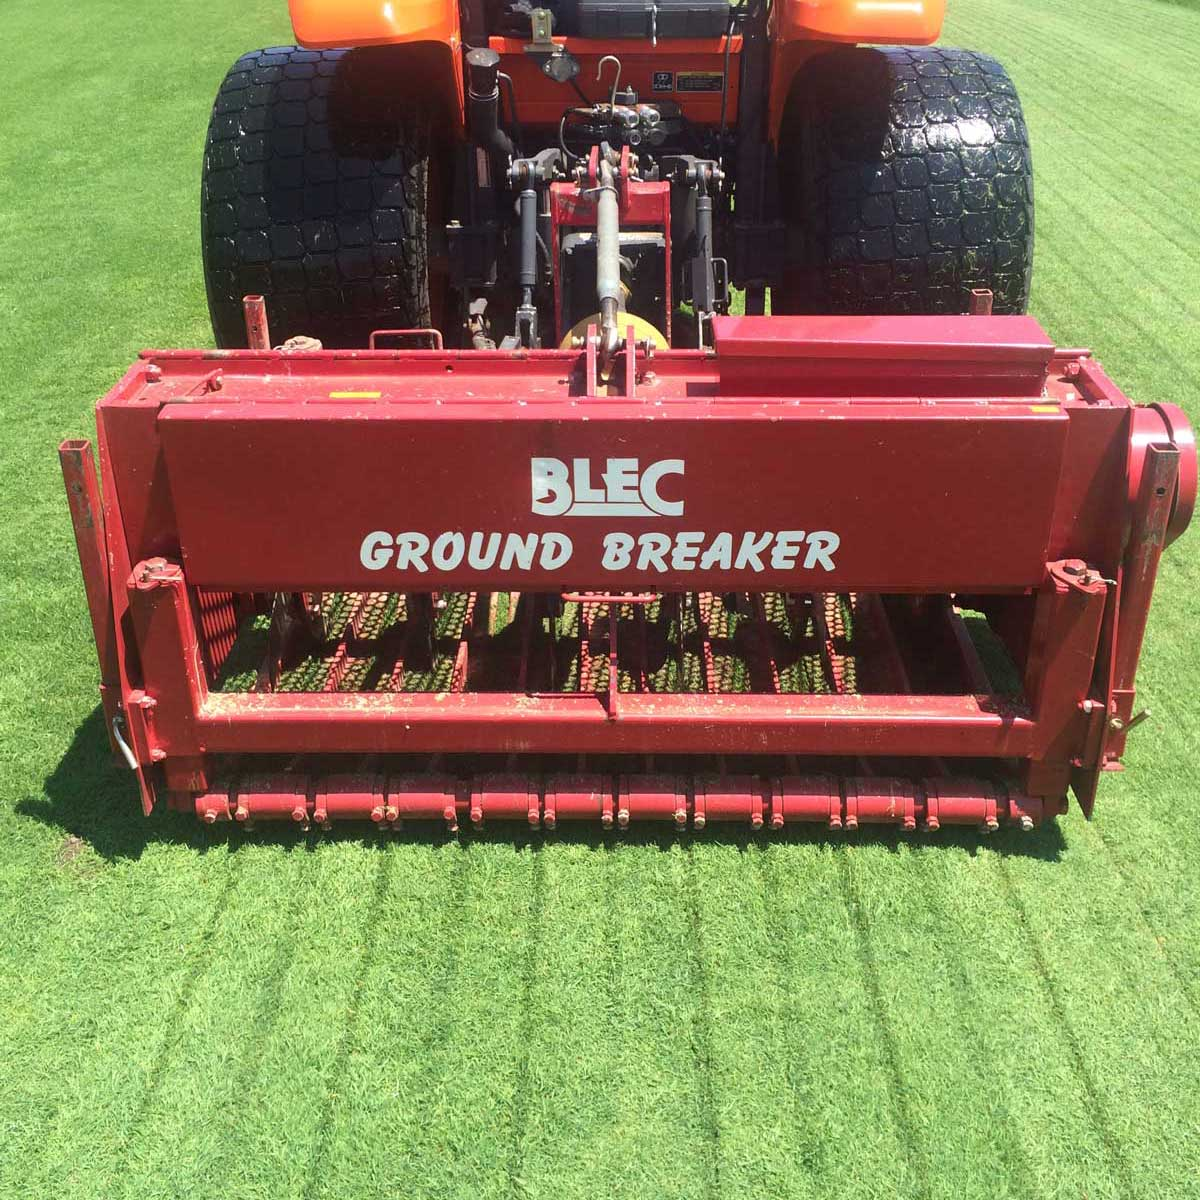 aerification services company that uses ground breaker equipment